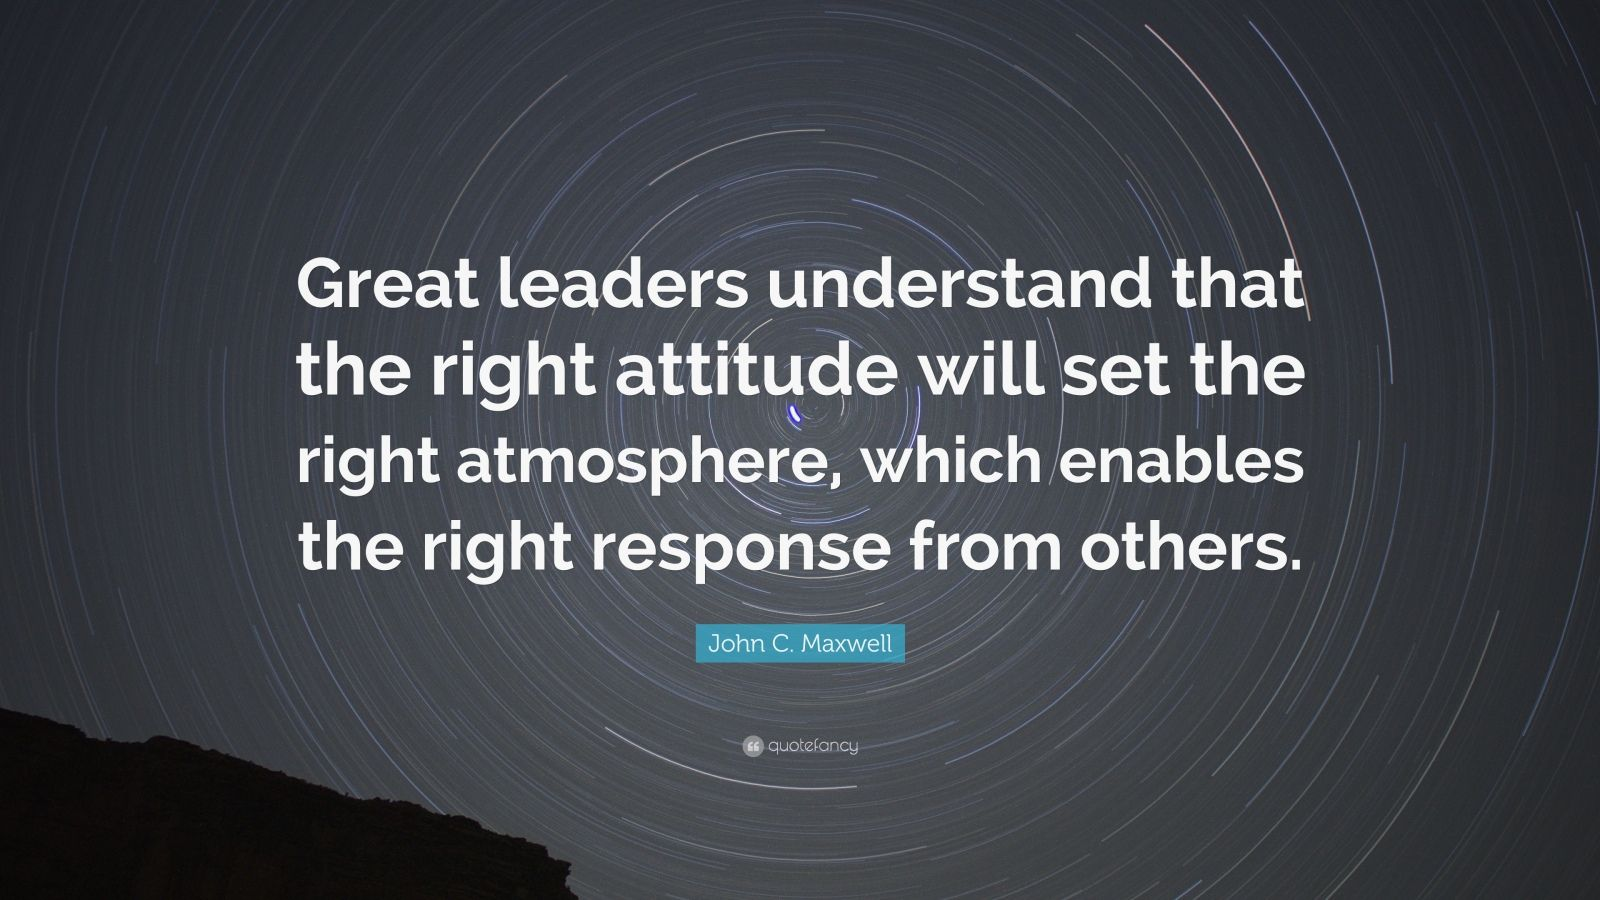 """John C. Maxwell Quote: """"Great leaders understand that the right attitude will set the right atmosphere, which enables the right response from others."""""""